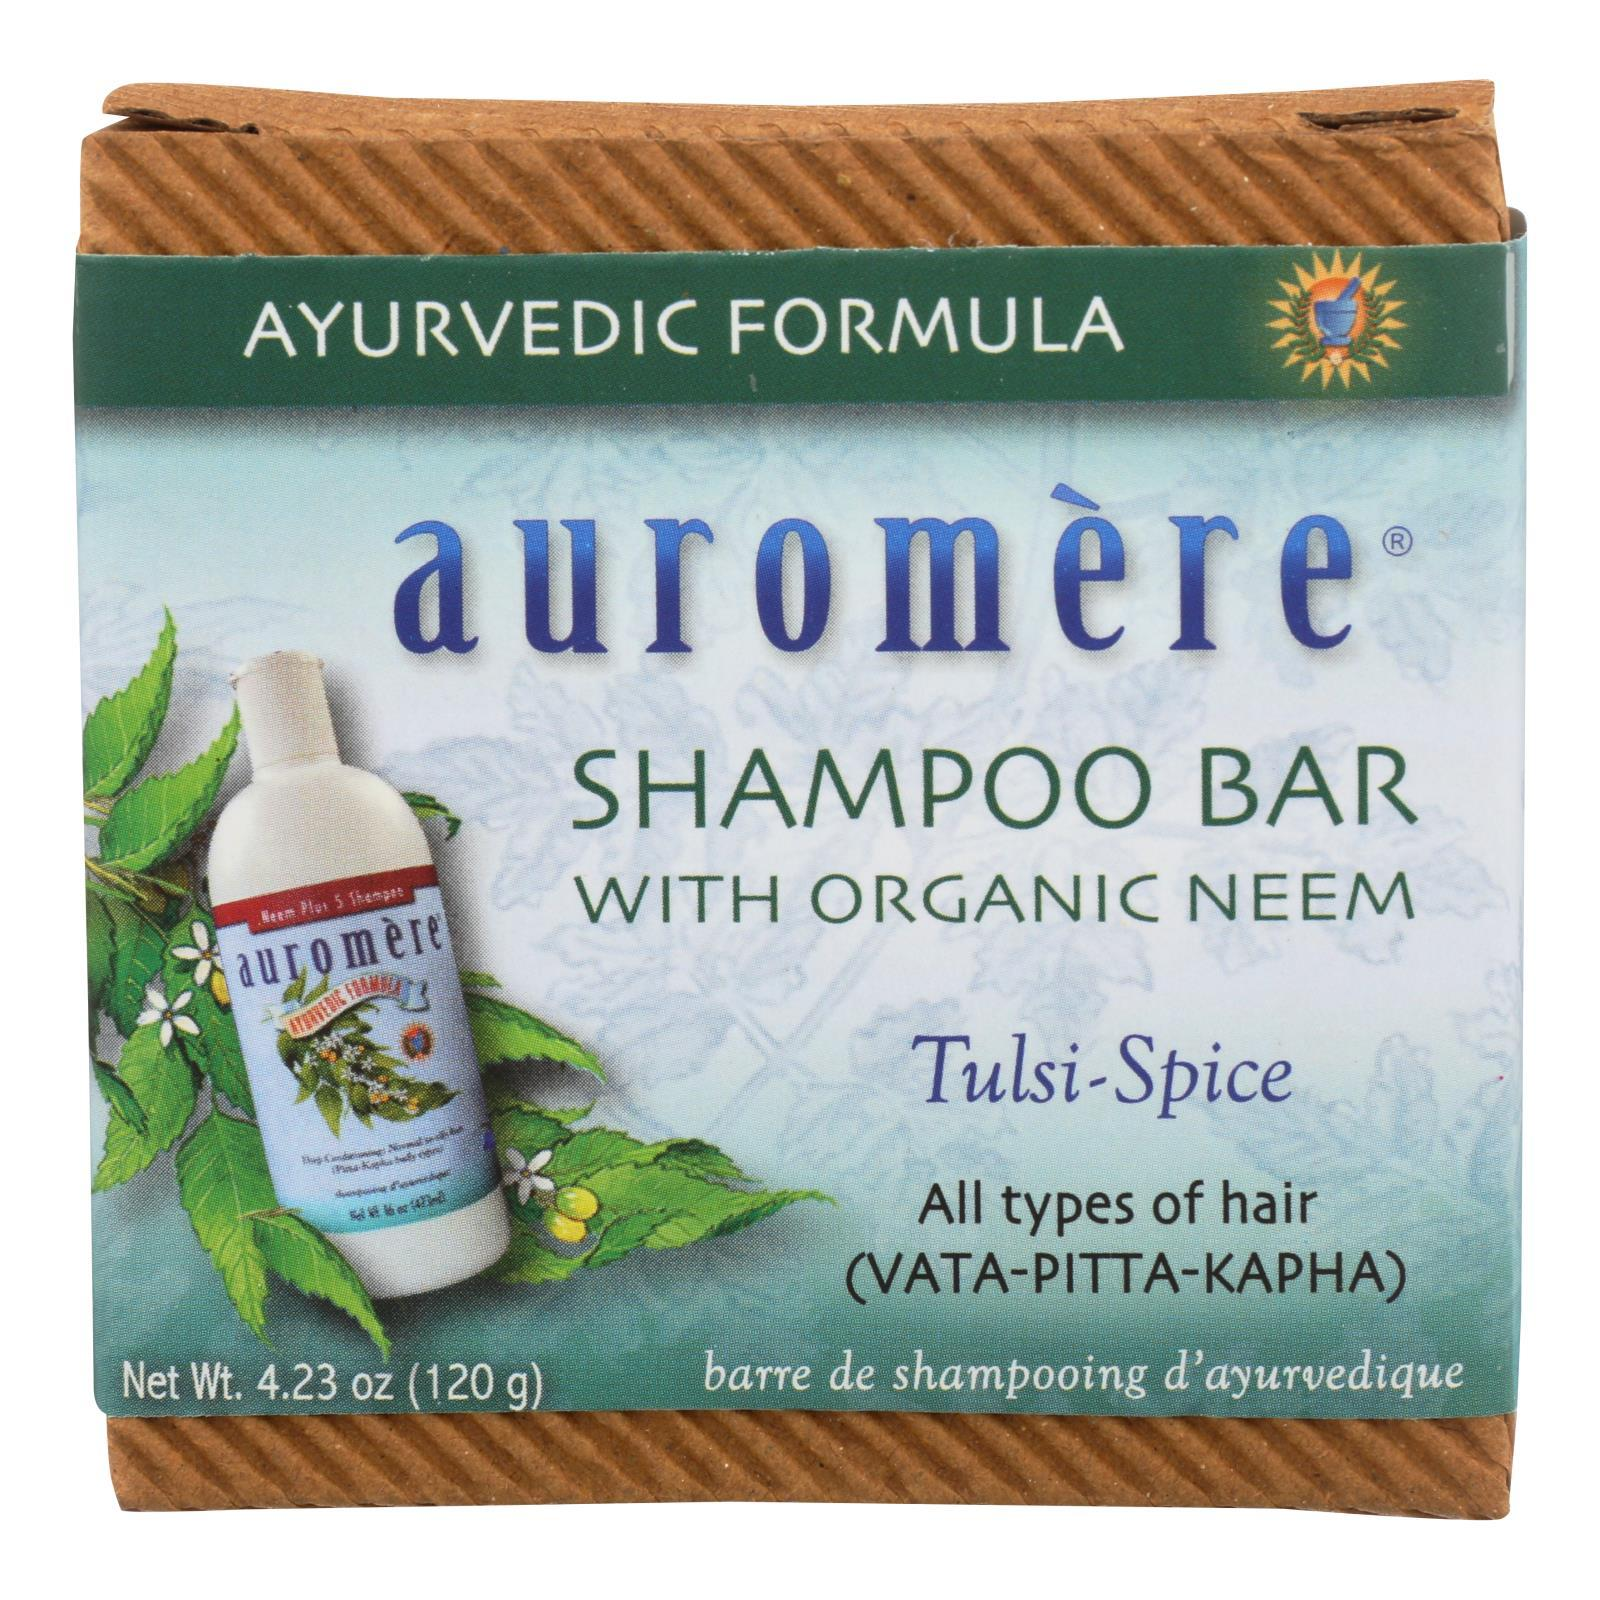 Auromere Shampoo - Tulsi-spice Eco-friendly Non-gmo Vegan-cruelty-free - Case Of 1 - 4.23 Oz. - BeeGreen